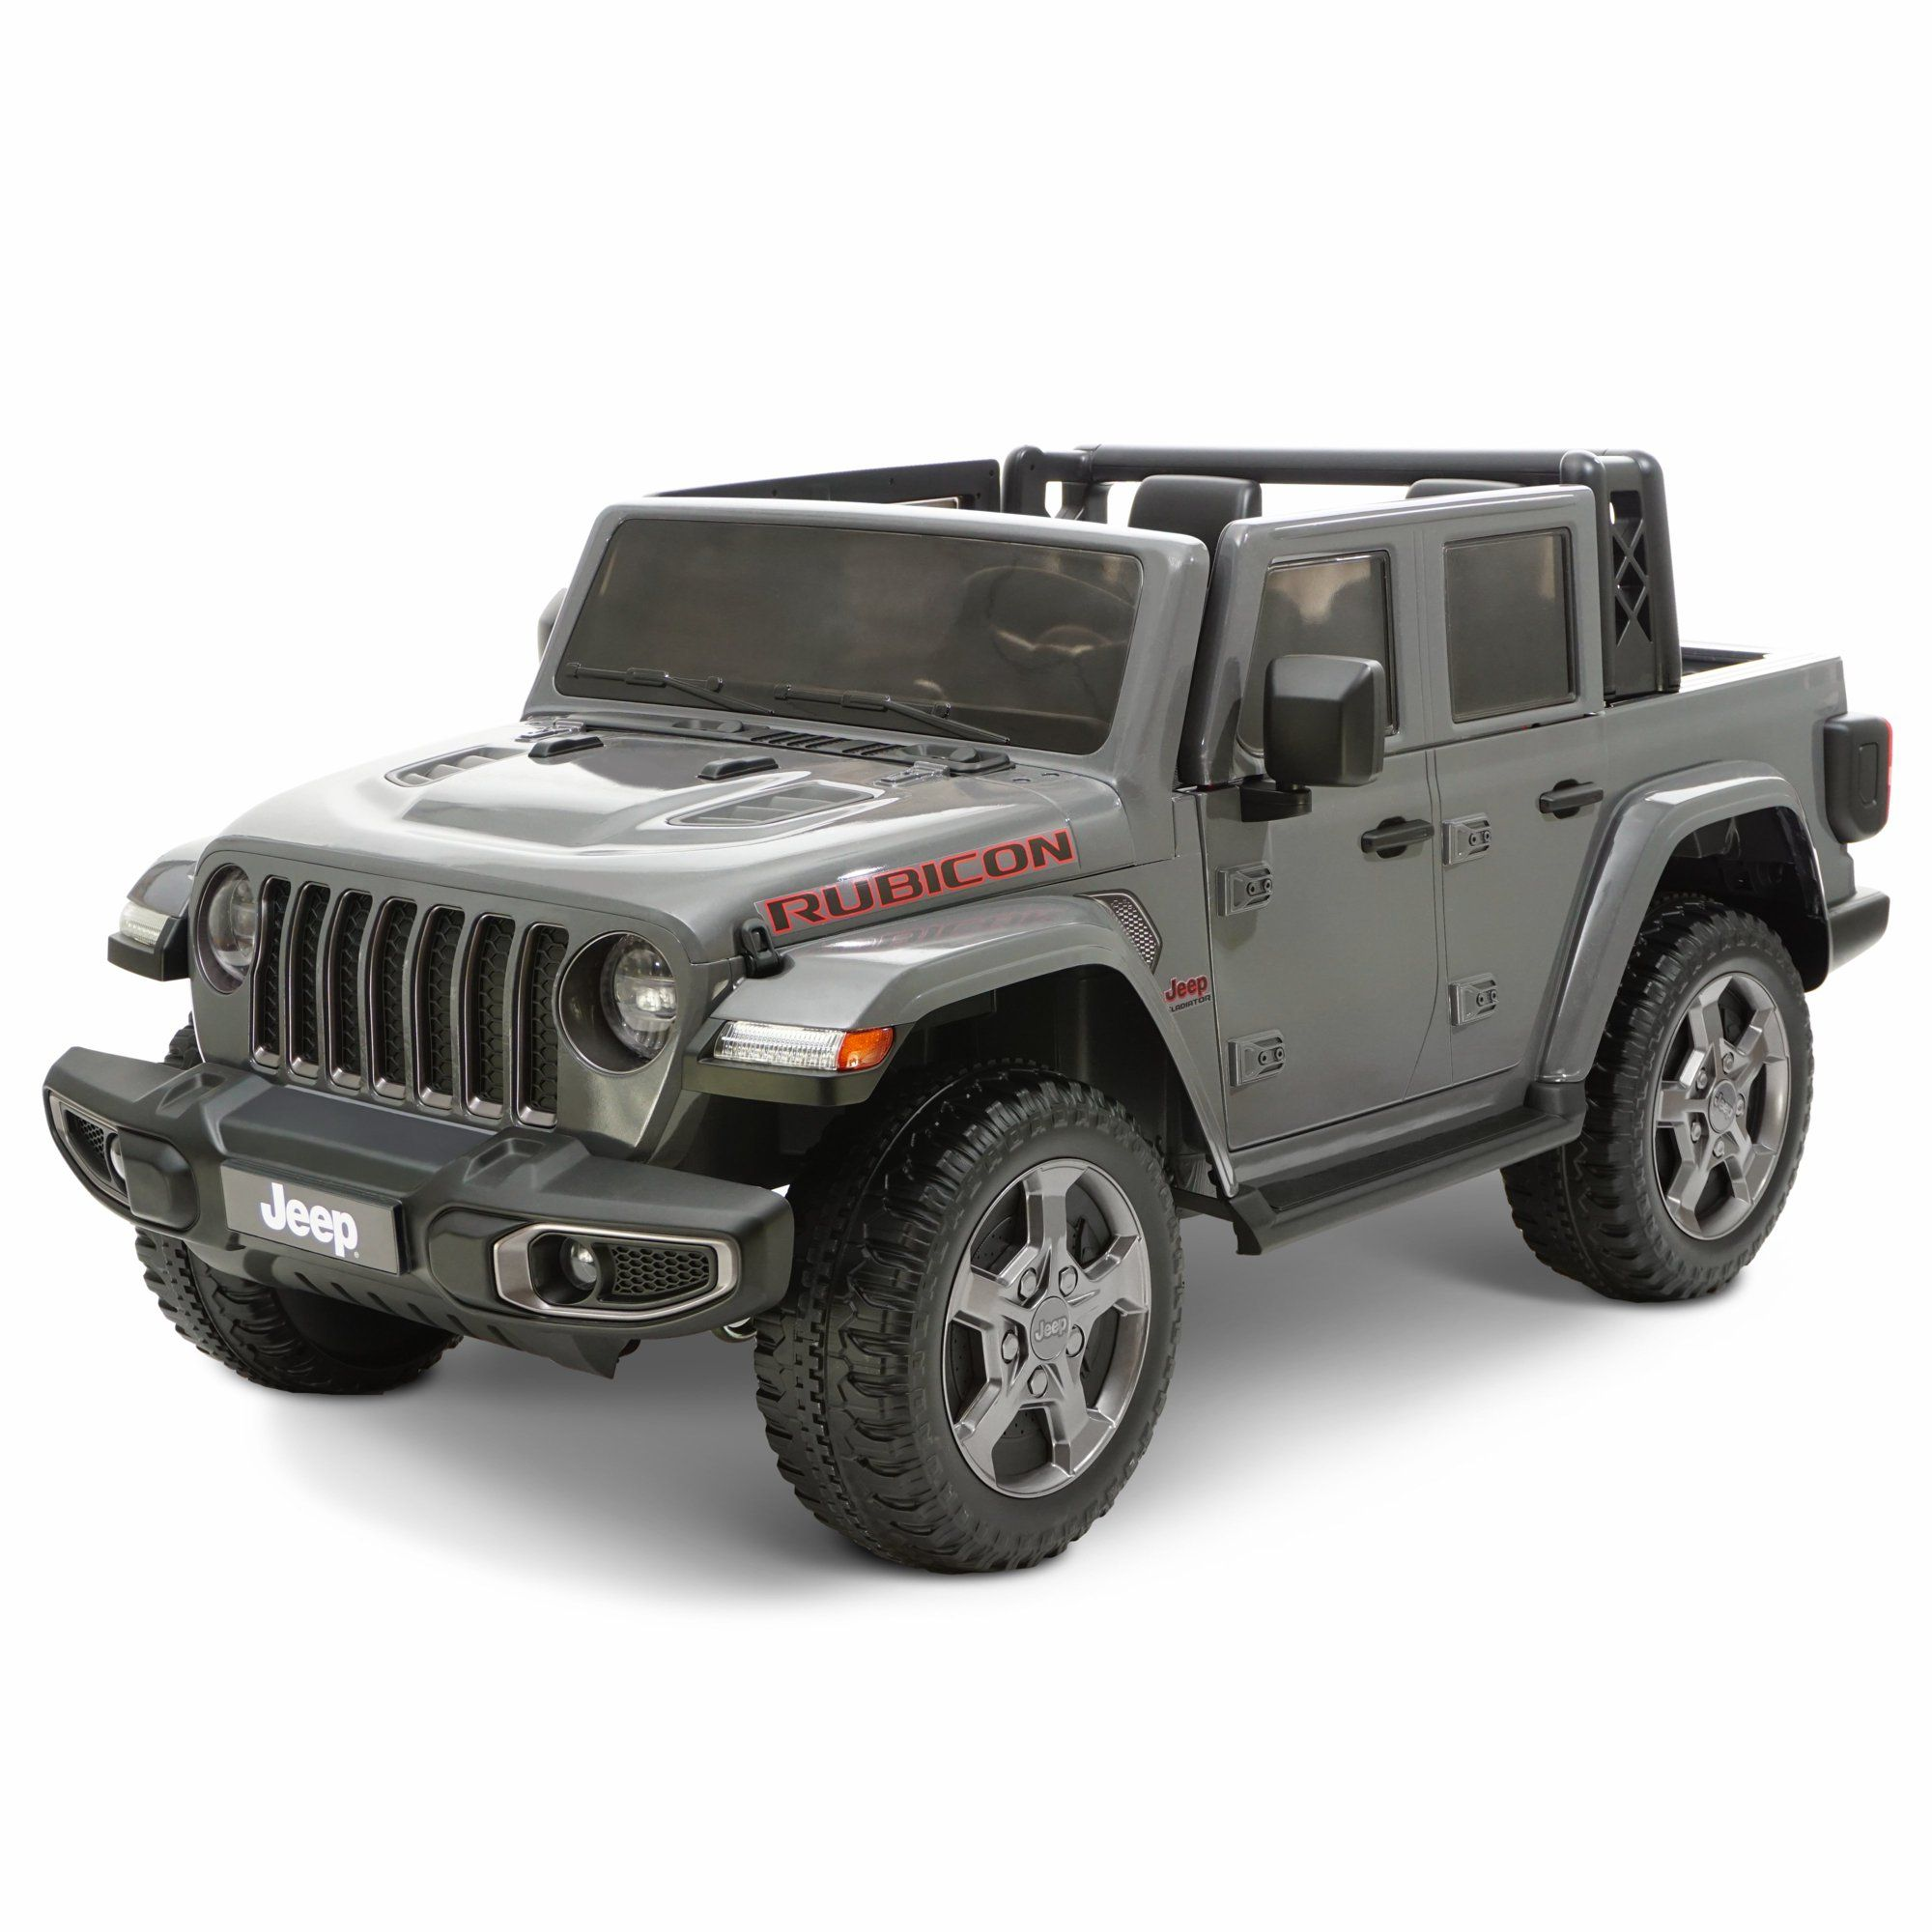 12 Volt Jeep Gladiator Battery Powered Ride On Vehicle Gray Walmart Com In 2020 Jeep Gladiator Jeep Power Wheels Truck